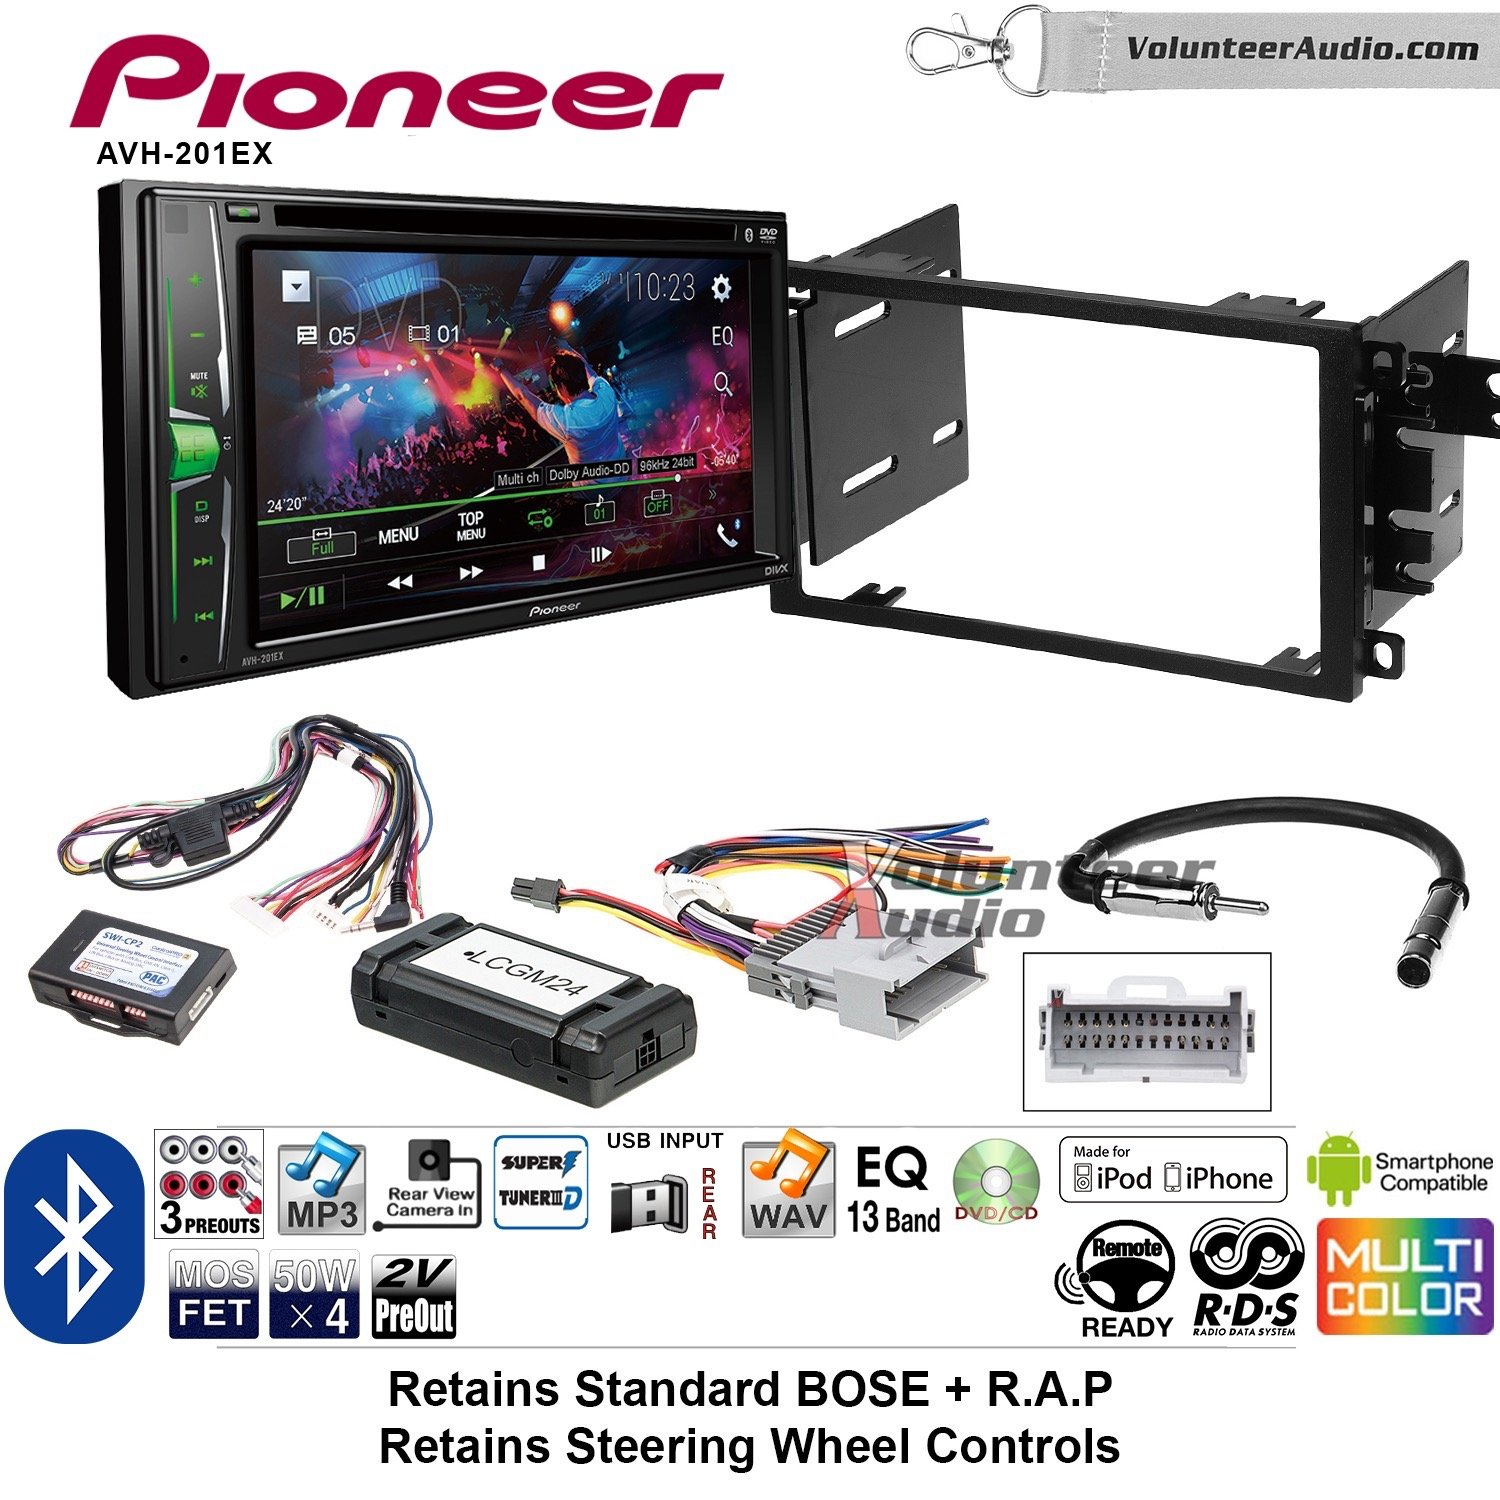 Pioneer AVH-201EX Double Din Radio Install Kit with CD Player Bluetooth USB/AUX Fits 2003-2005 Chevrolet Blazer, 2003-2006 Silverado, Suburban (Bose and SWC) by Volunteer Audio (Image #1)